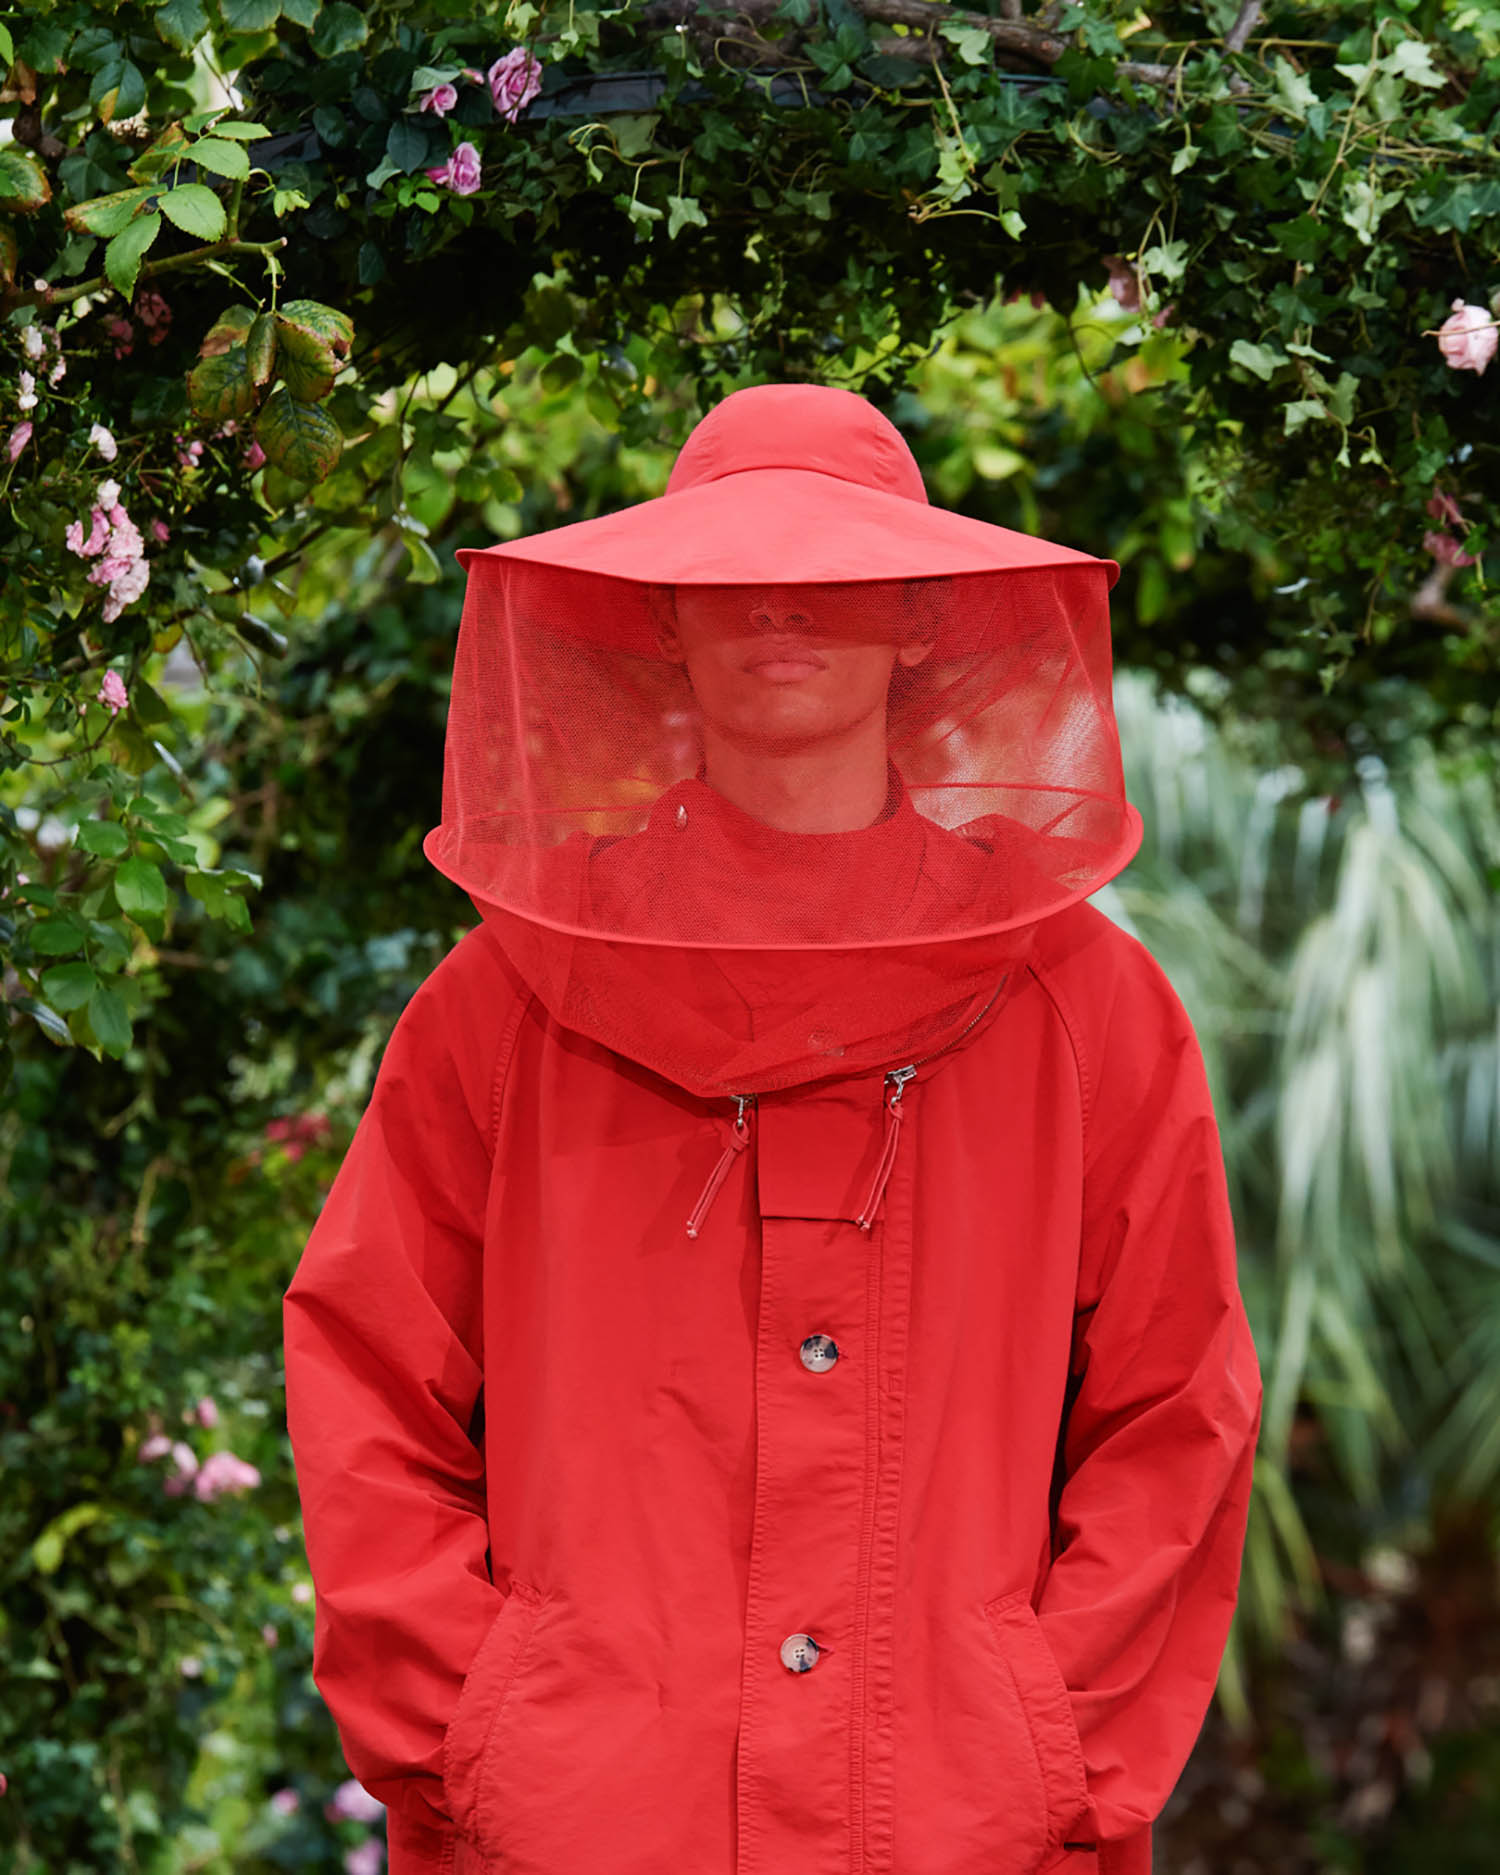 Kenzo's beekeeper-inspired collection is a planetary call to action